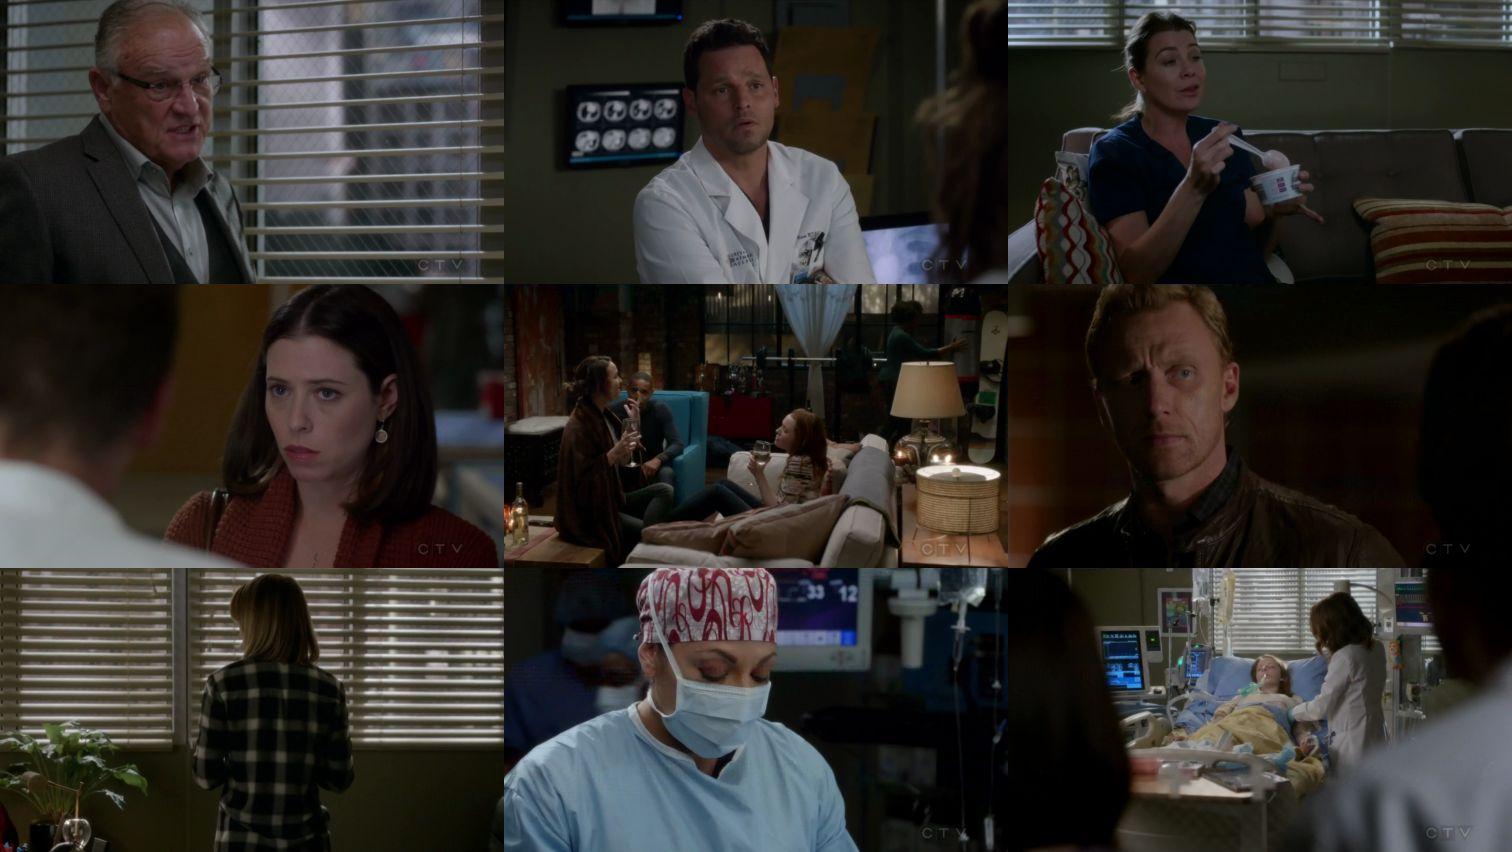 Greys Anatomy S12E10 HDTV x264-KILLERS